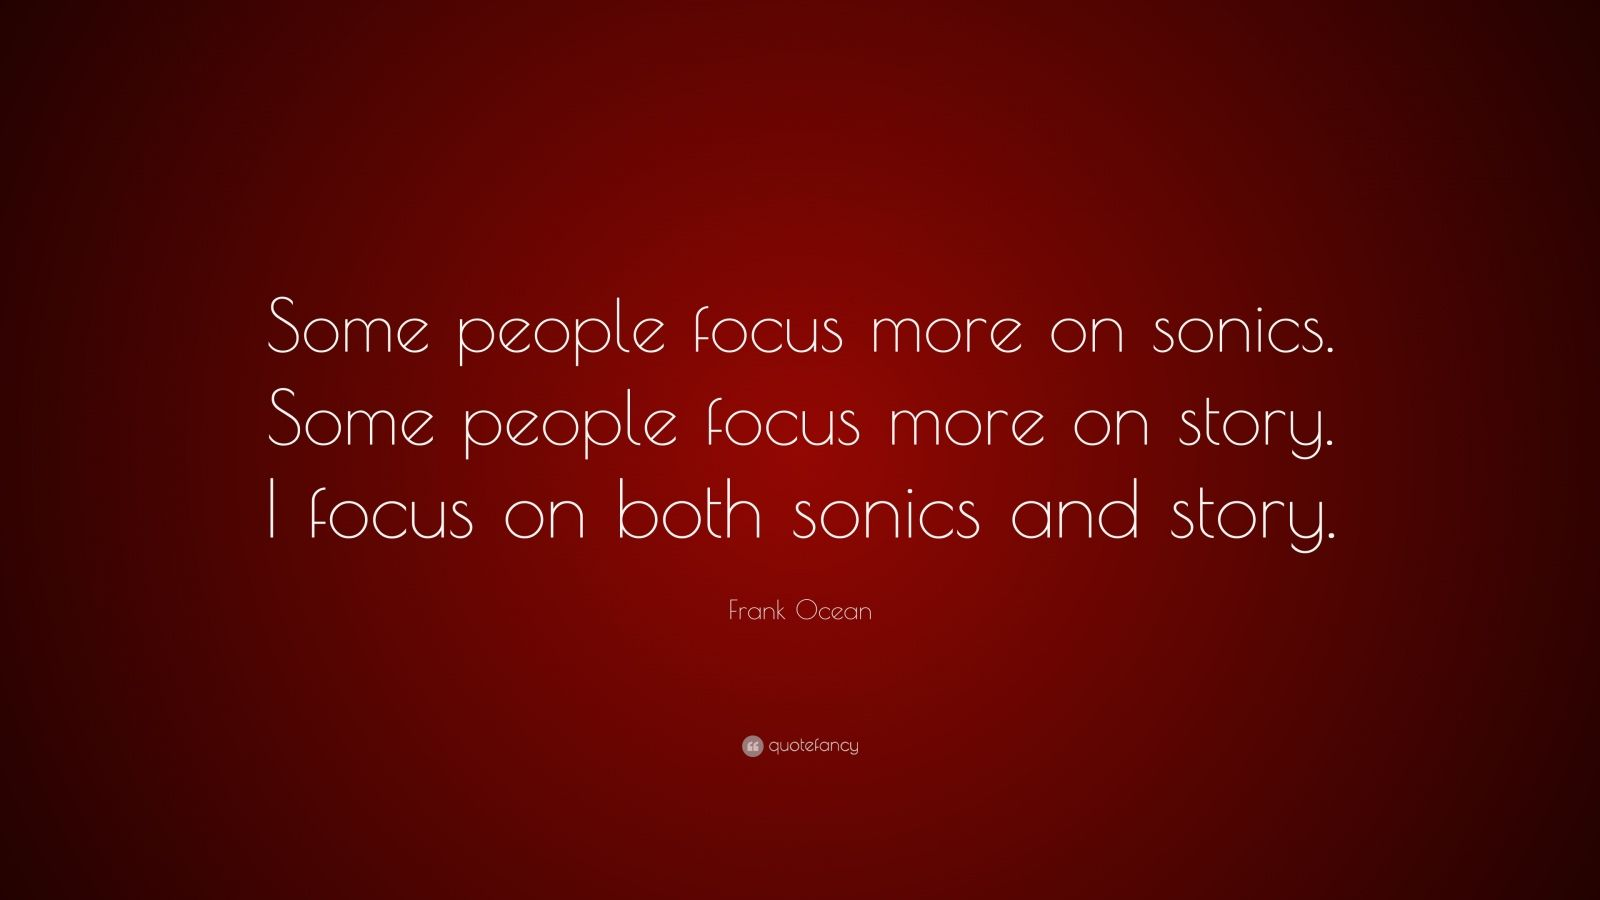 """Frank Ocean Quote: """"Some people focus more on sonics. Some people focus more on story. I focus on both sonics and story."""""""